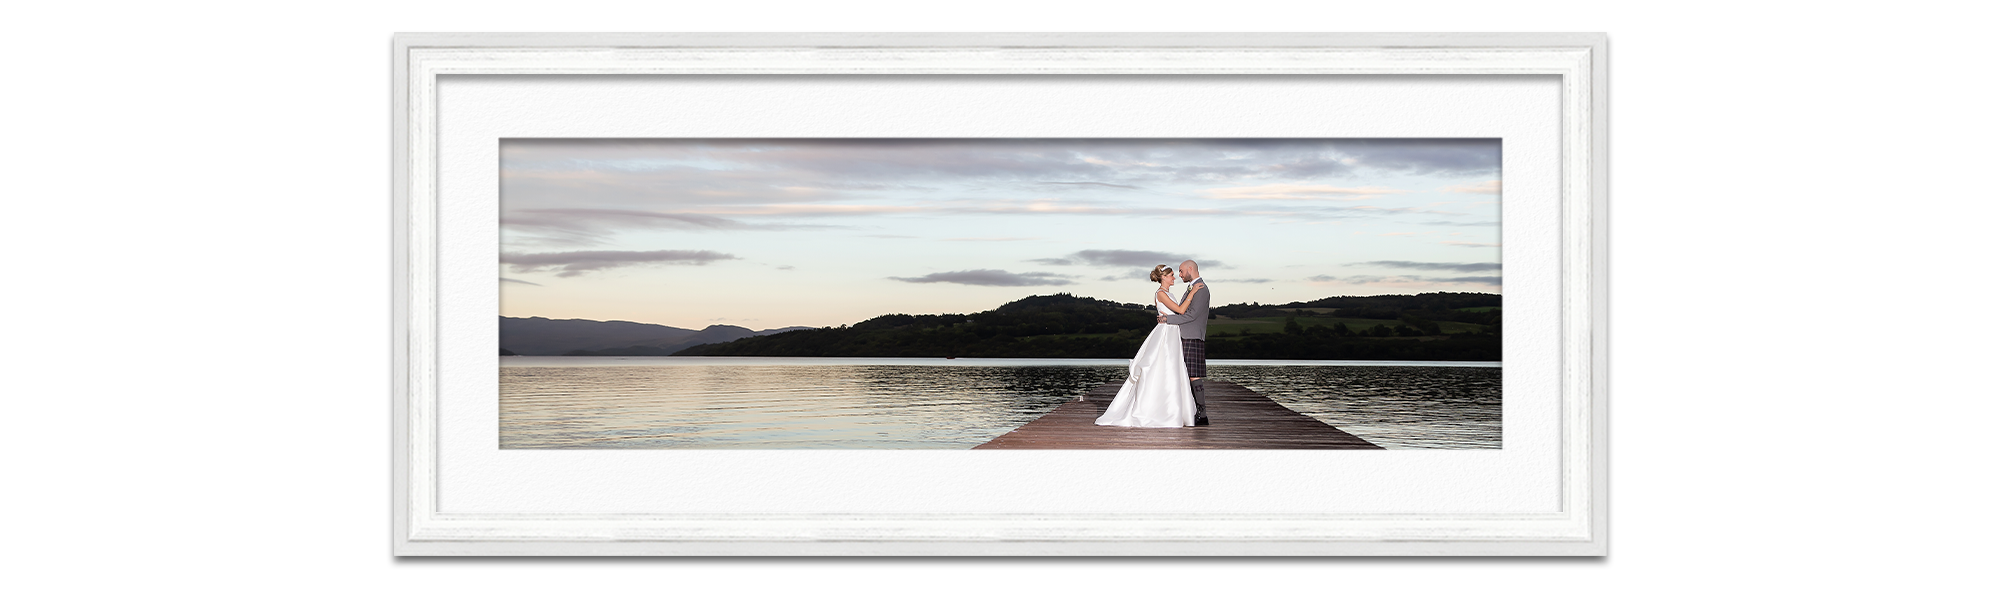 wedding photo newly married husband and wife on pier Duck Bay Hotel Loch Lomond Life in Focus Portraits wedding photographer Helensburgh Luss Argyll and Bute